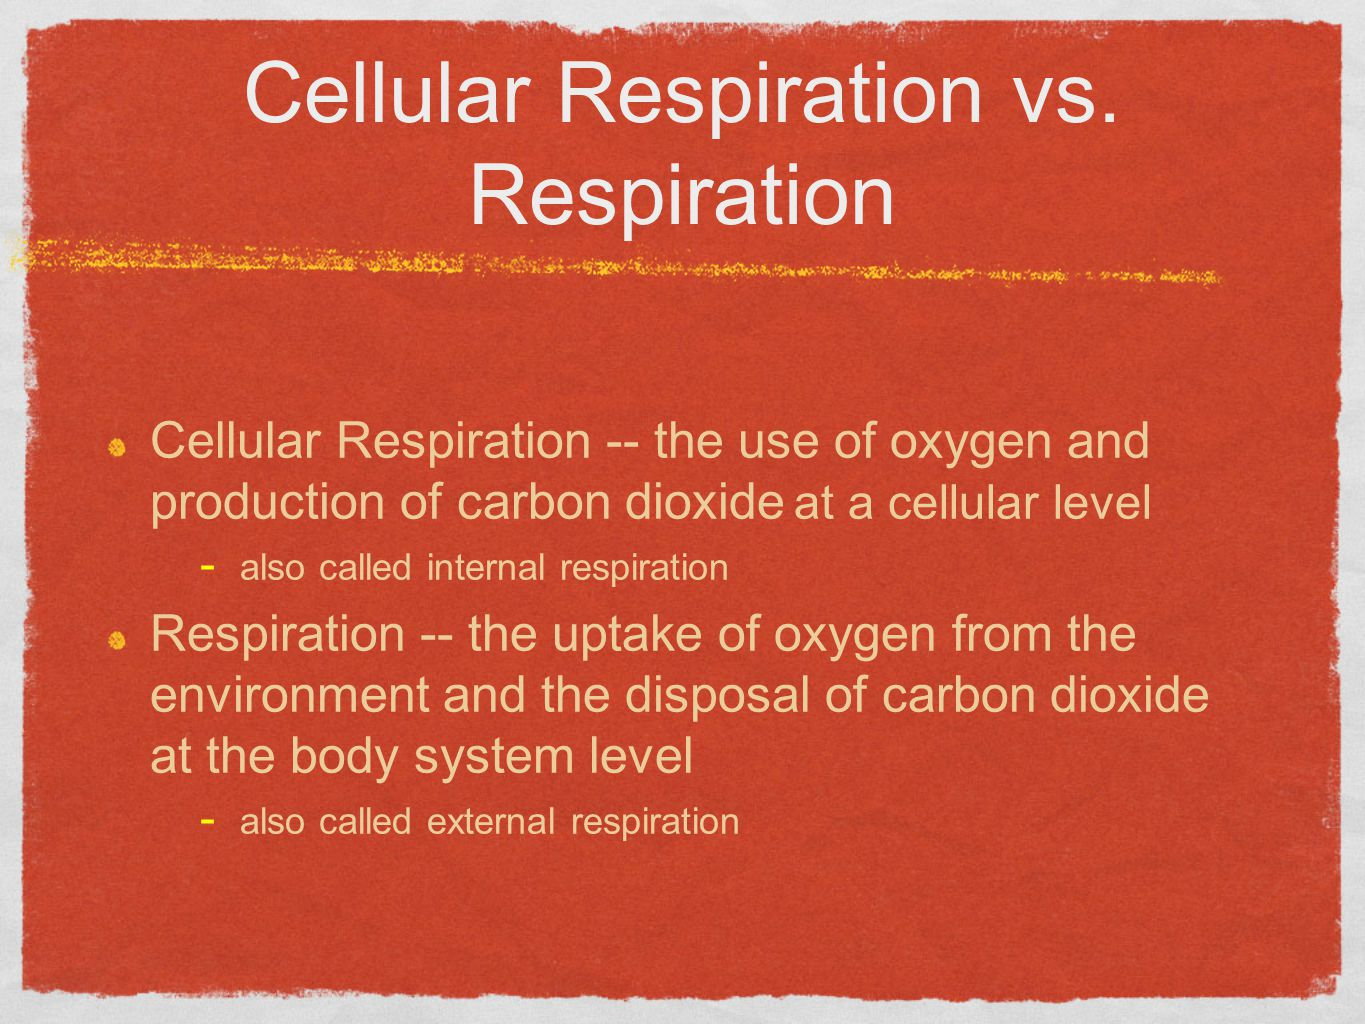 Cellular Respiration vs. Respiration